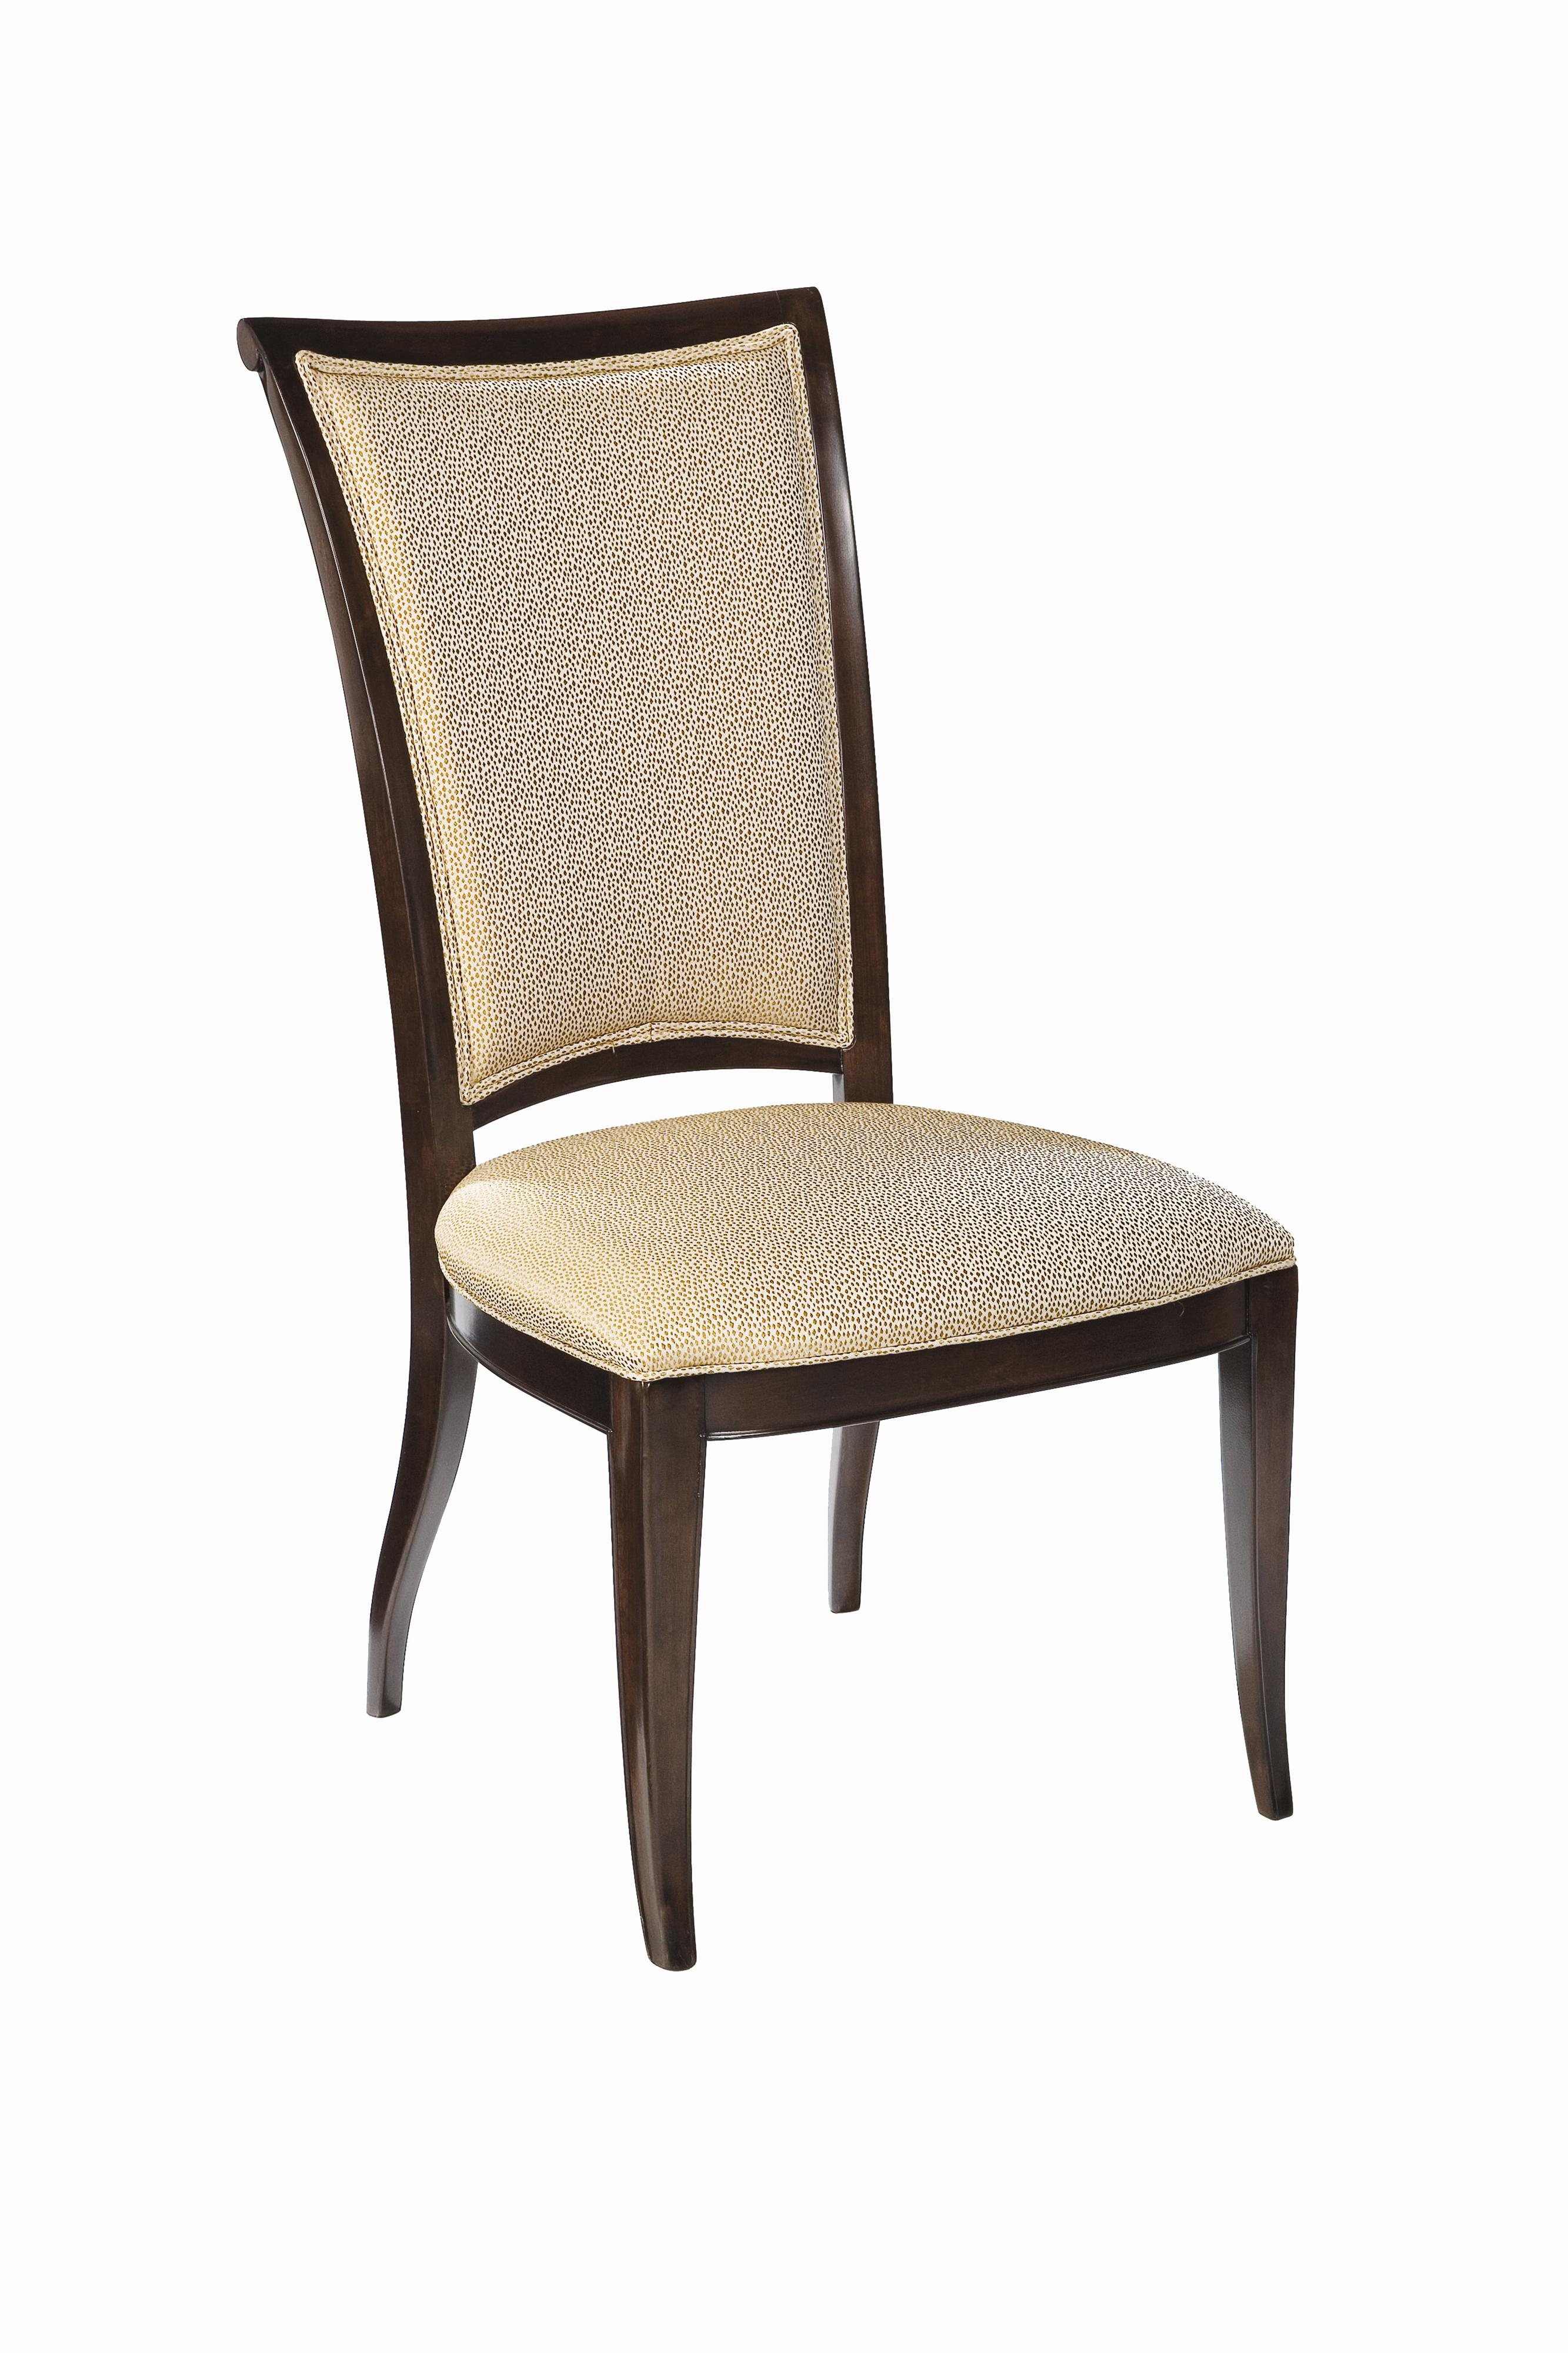 Thomasville174 Studio 455 Upholstered Dining Side Chair  : products2Fthomasville2Fcolor2Fstudio2045545521 871 b from www.dunkandbright.com size 2666 x 4000 jpeg 791kB